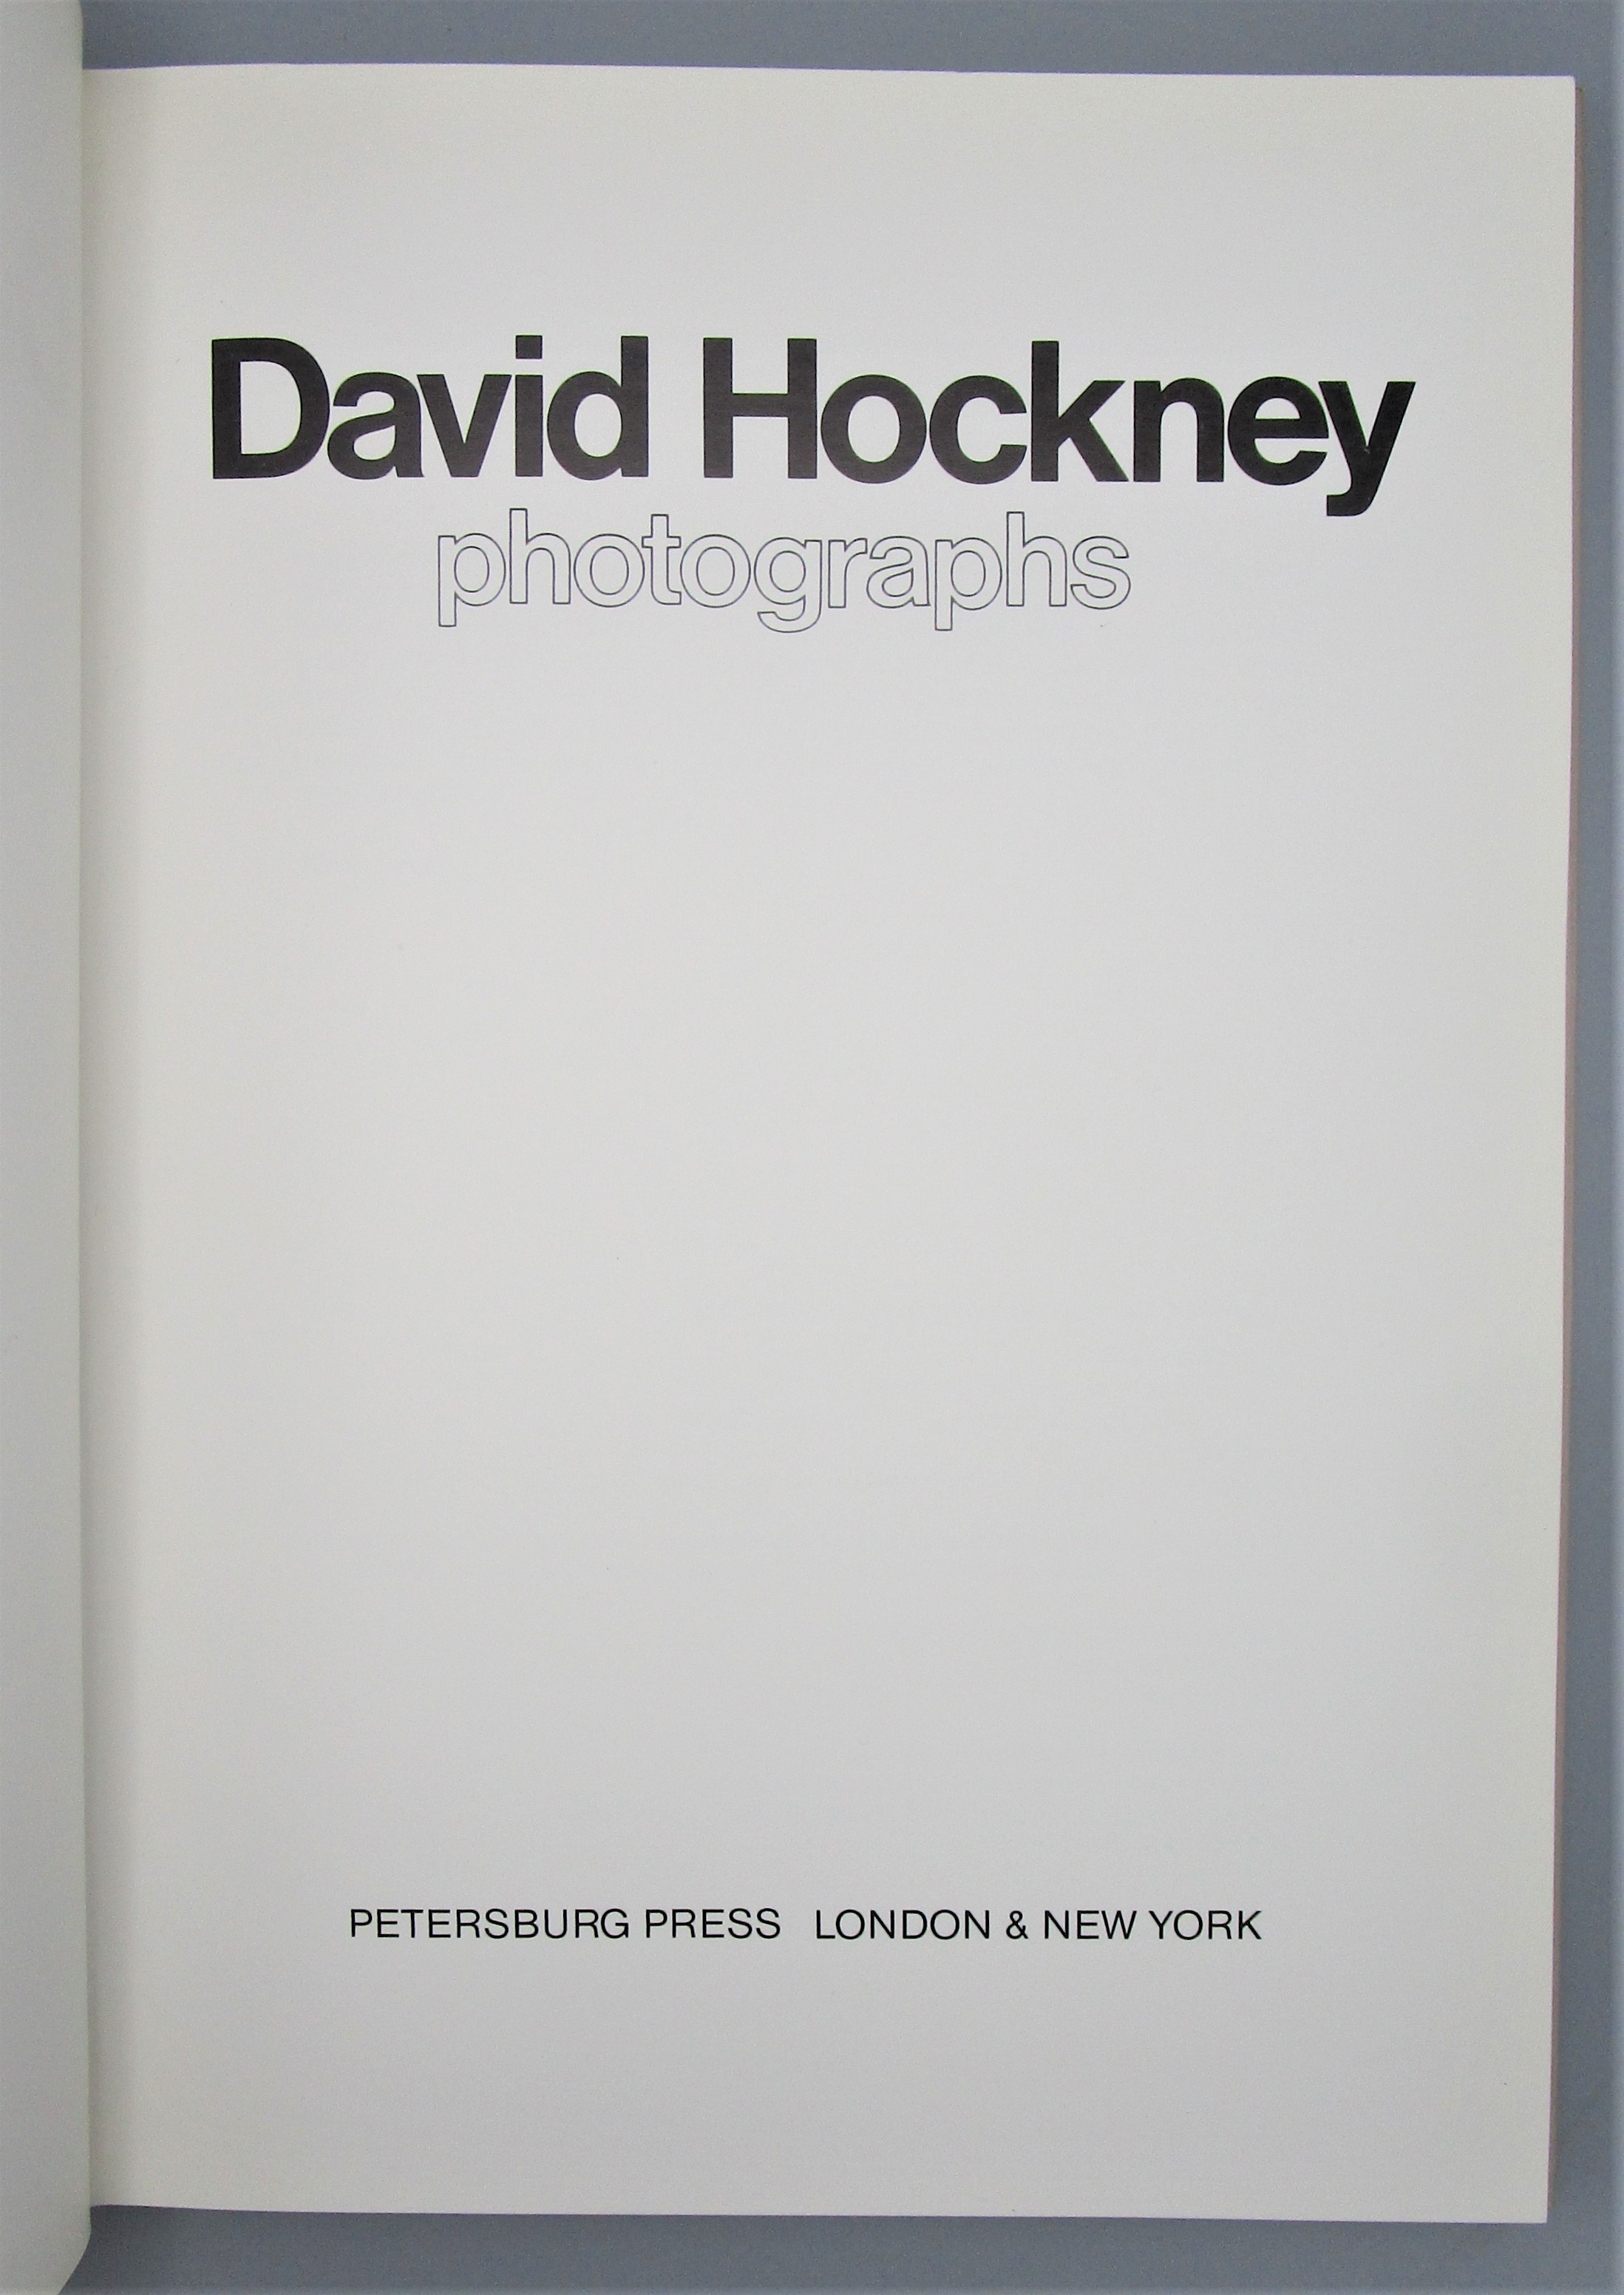 DAVID HOCKNEY PHOTOGRAPHS, by A. Sayag & D. Hockney - 1982